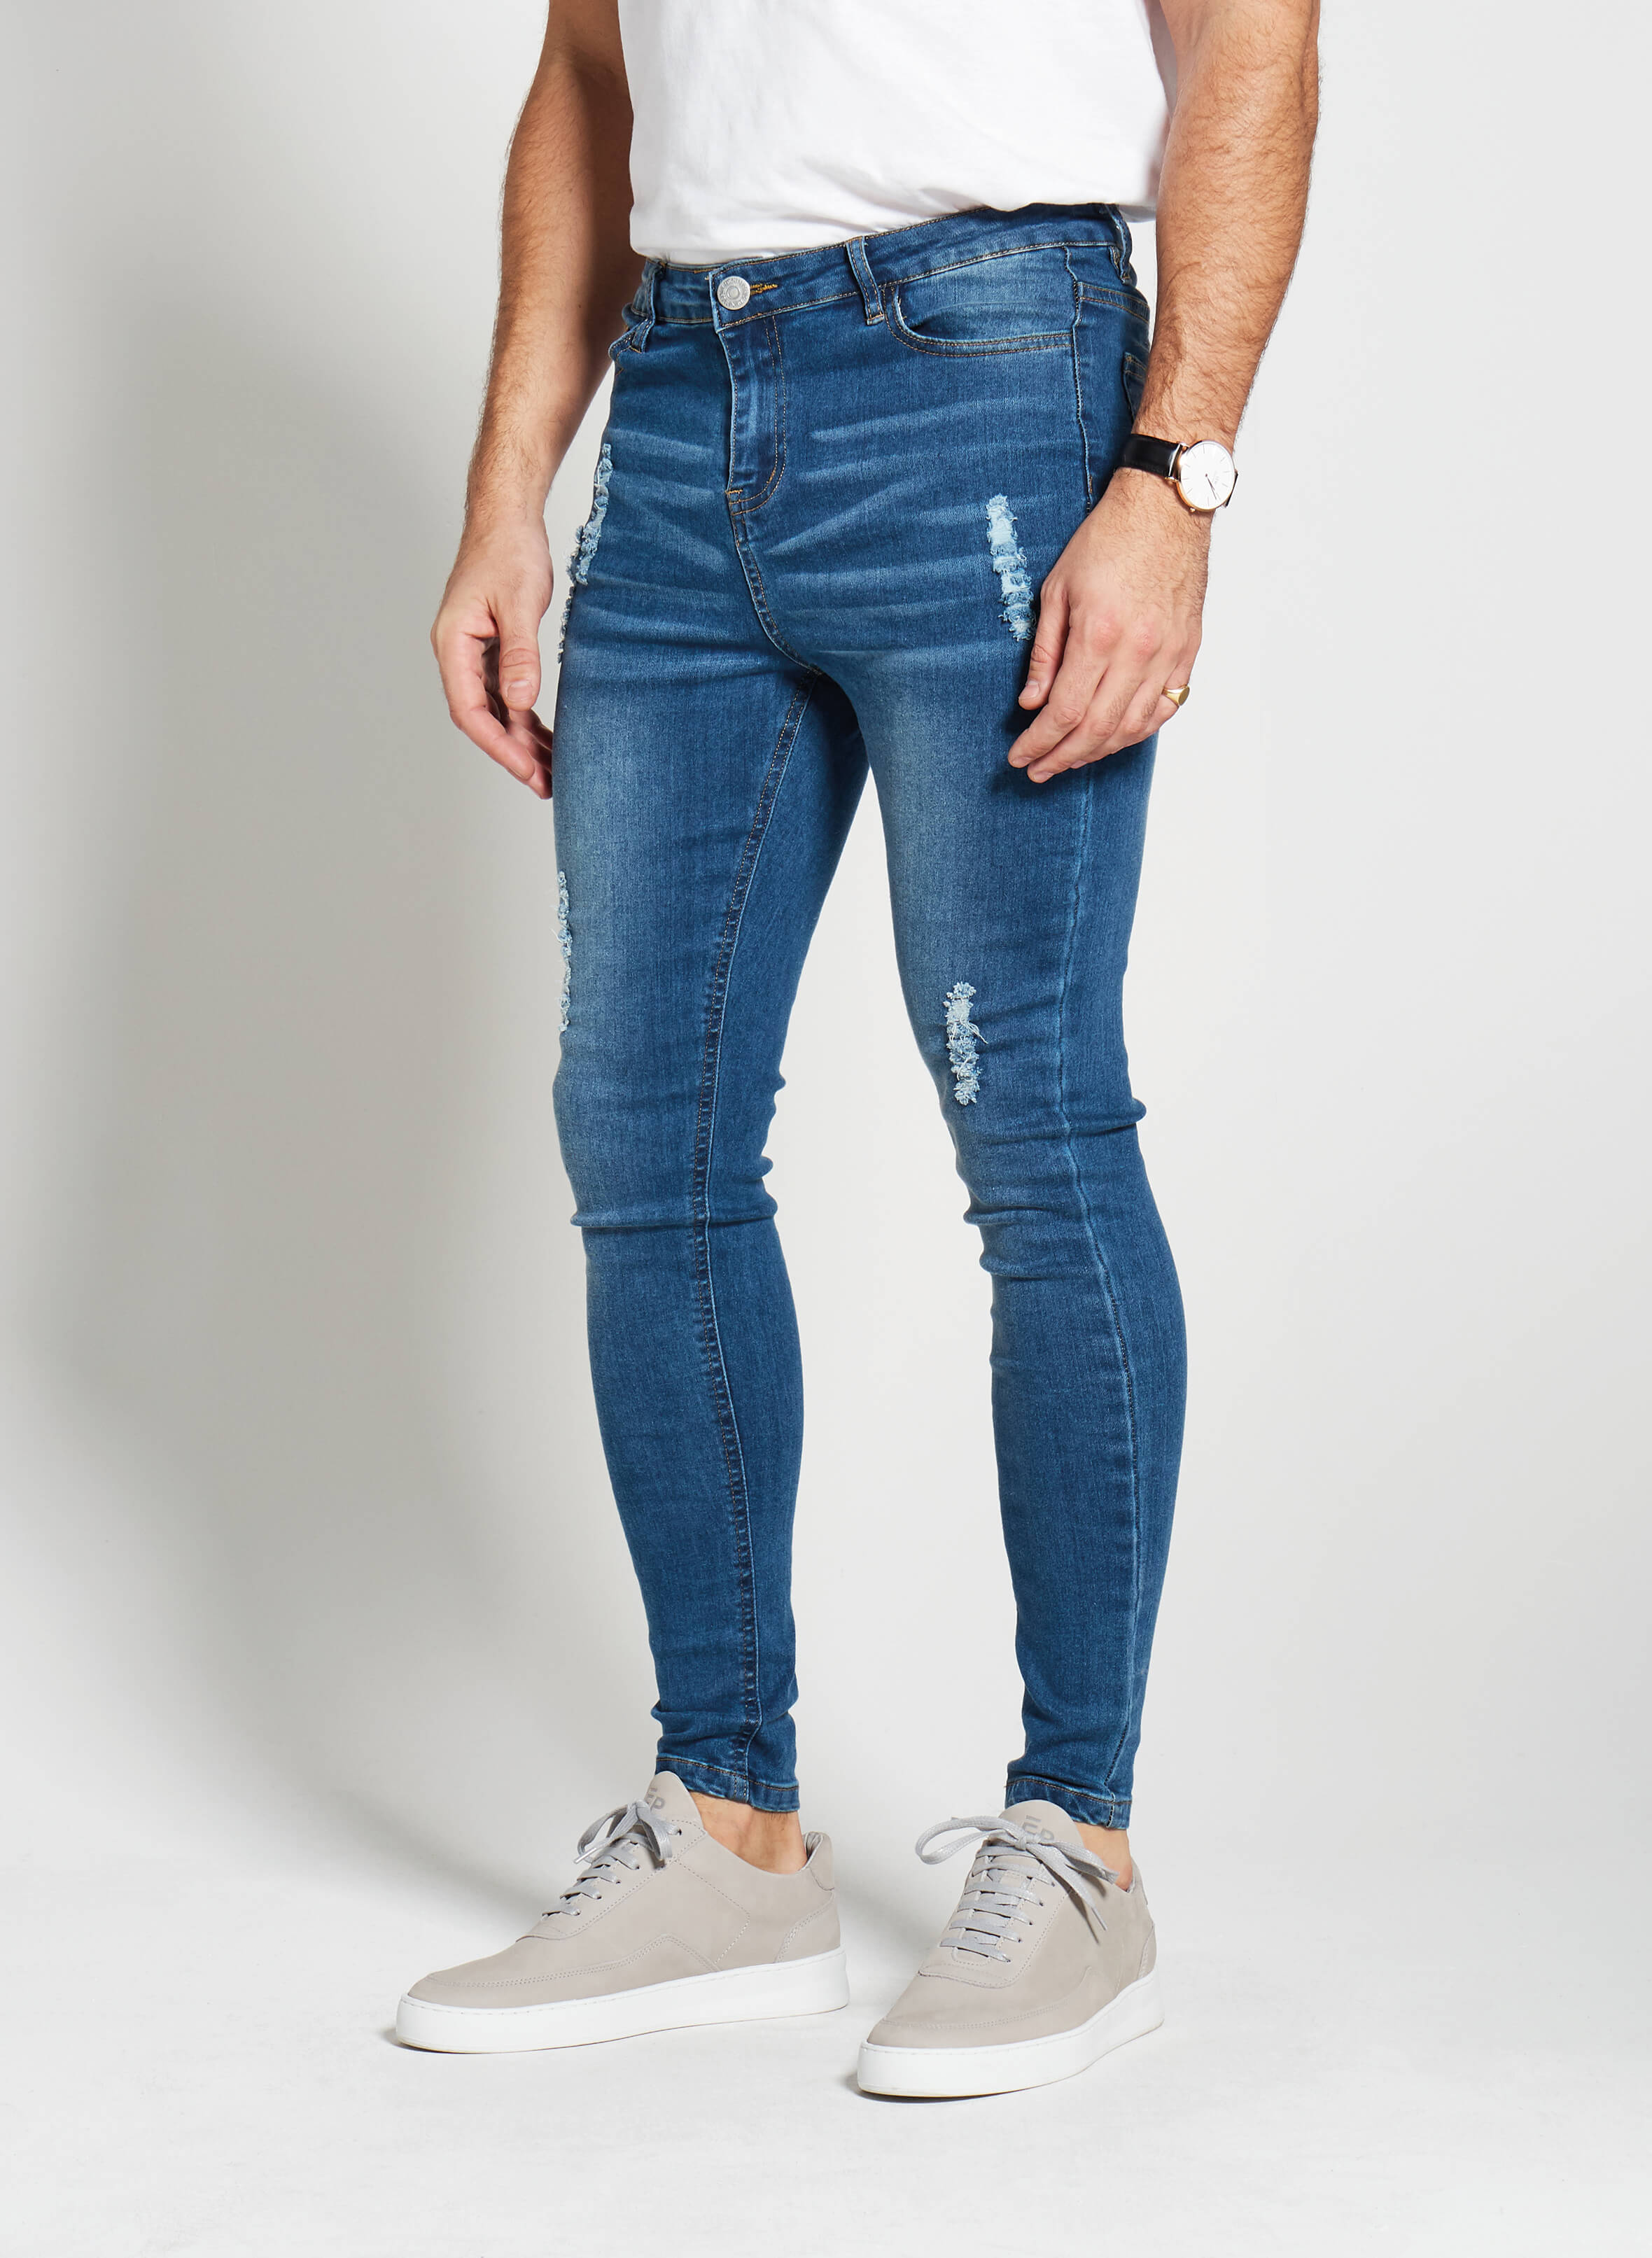 Denim Only® Spray On Jeans - Distressed Blue - Spray On